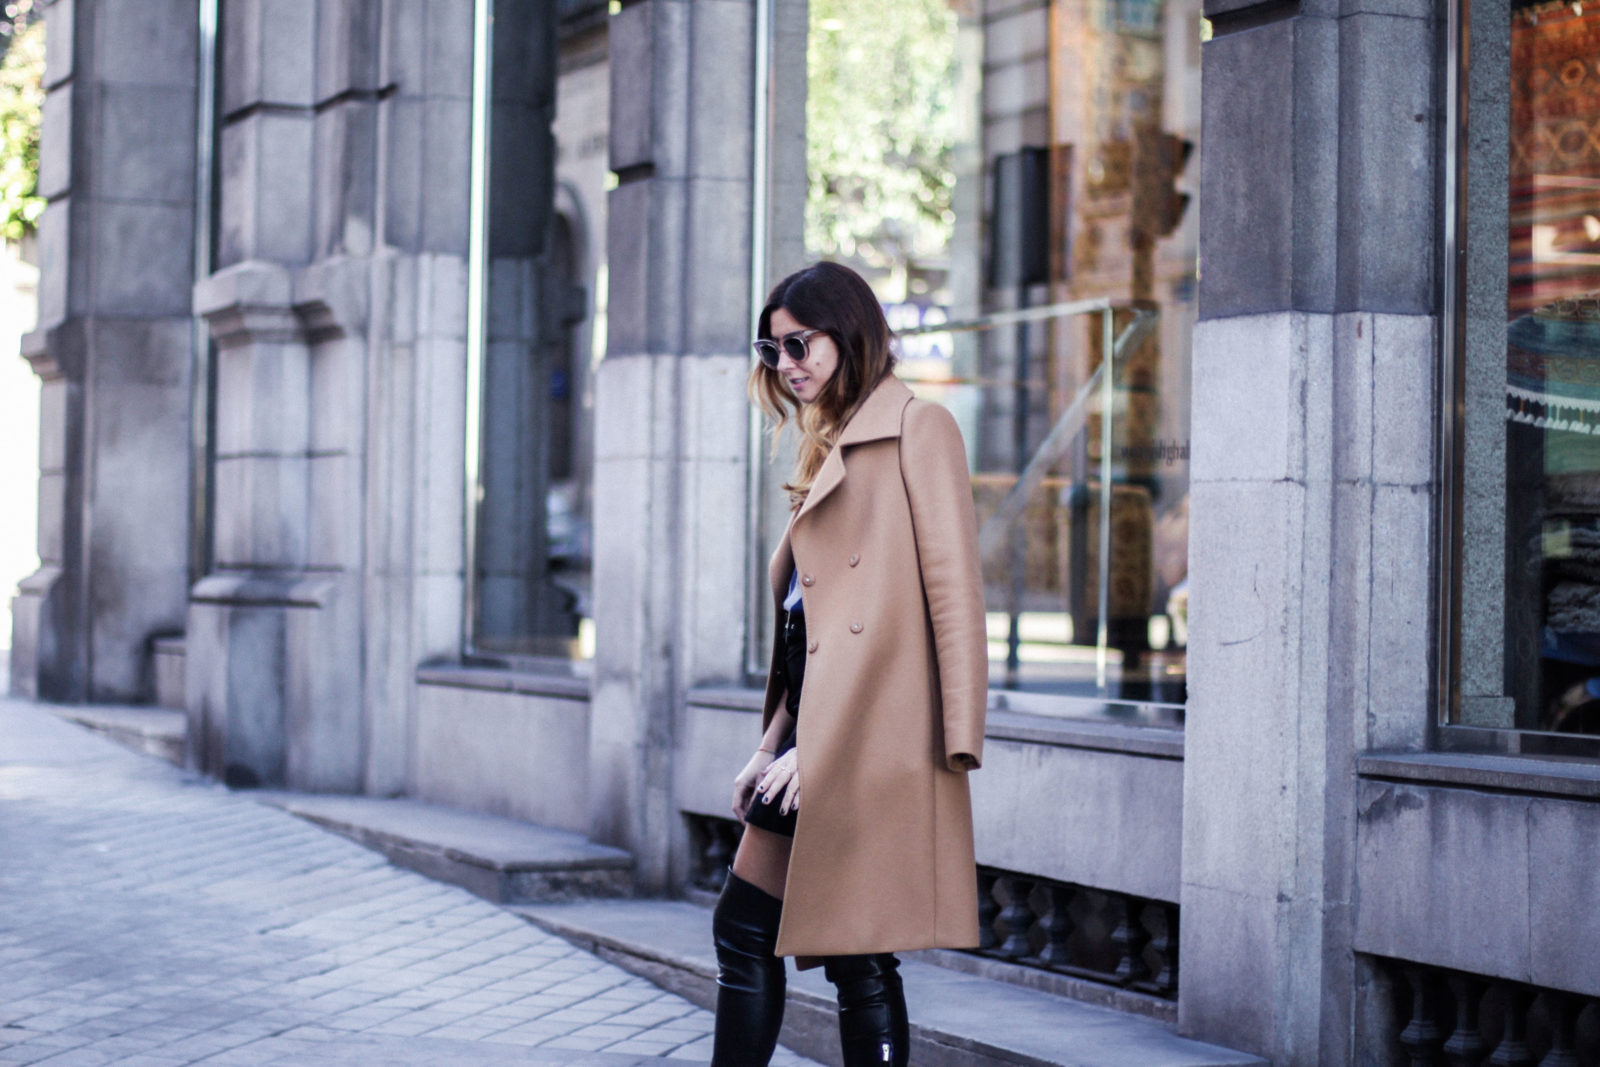 jersey_de_rayas-shein-falda-botas-altas-gucci-other_stories-abrigo_camel-looks-trends-fall-2016-street-style-donkeycool-4